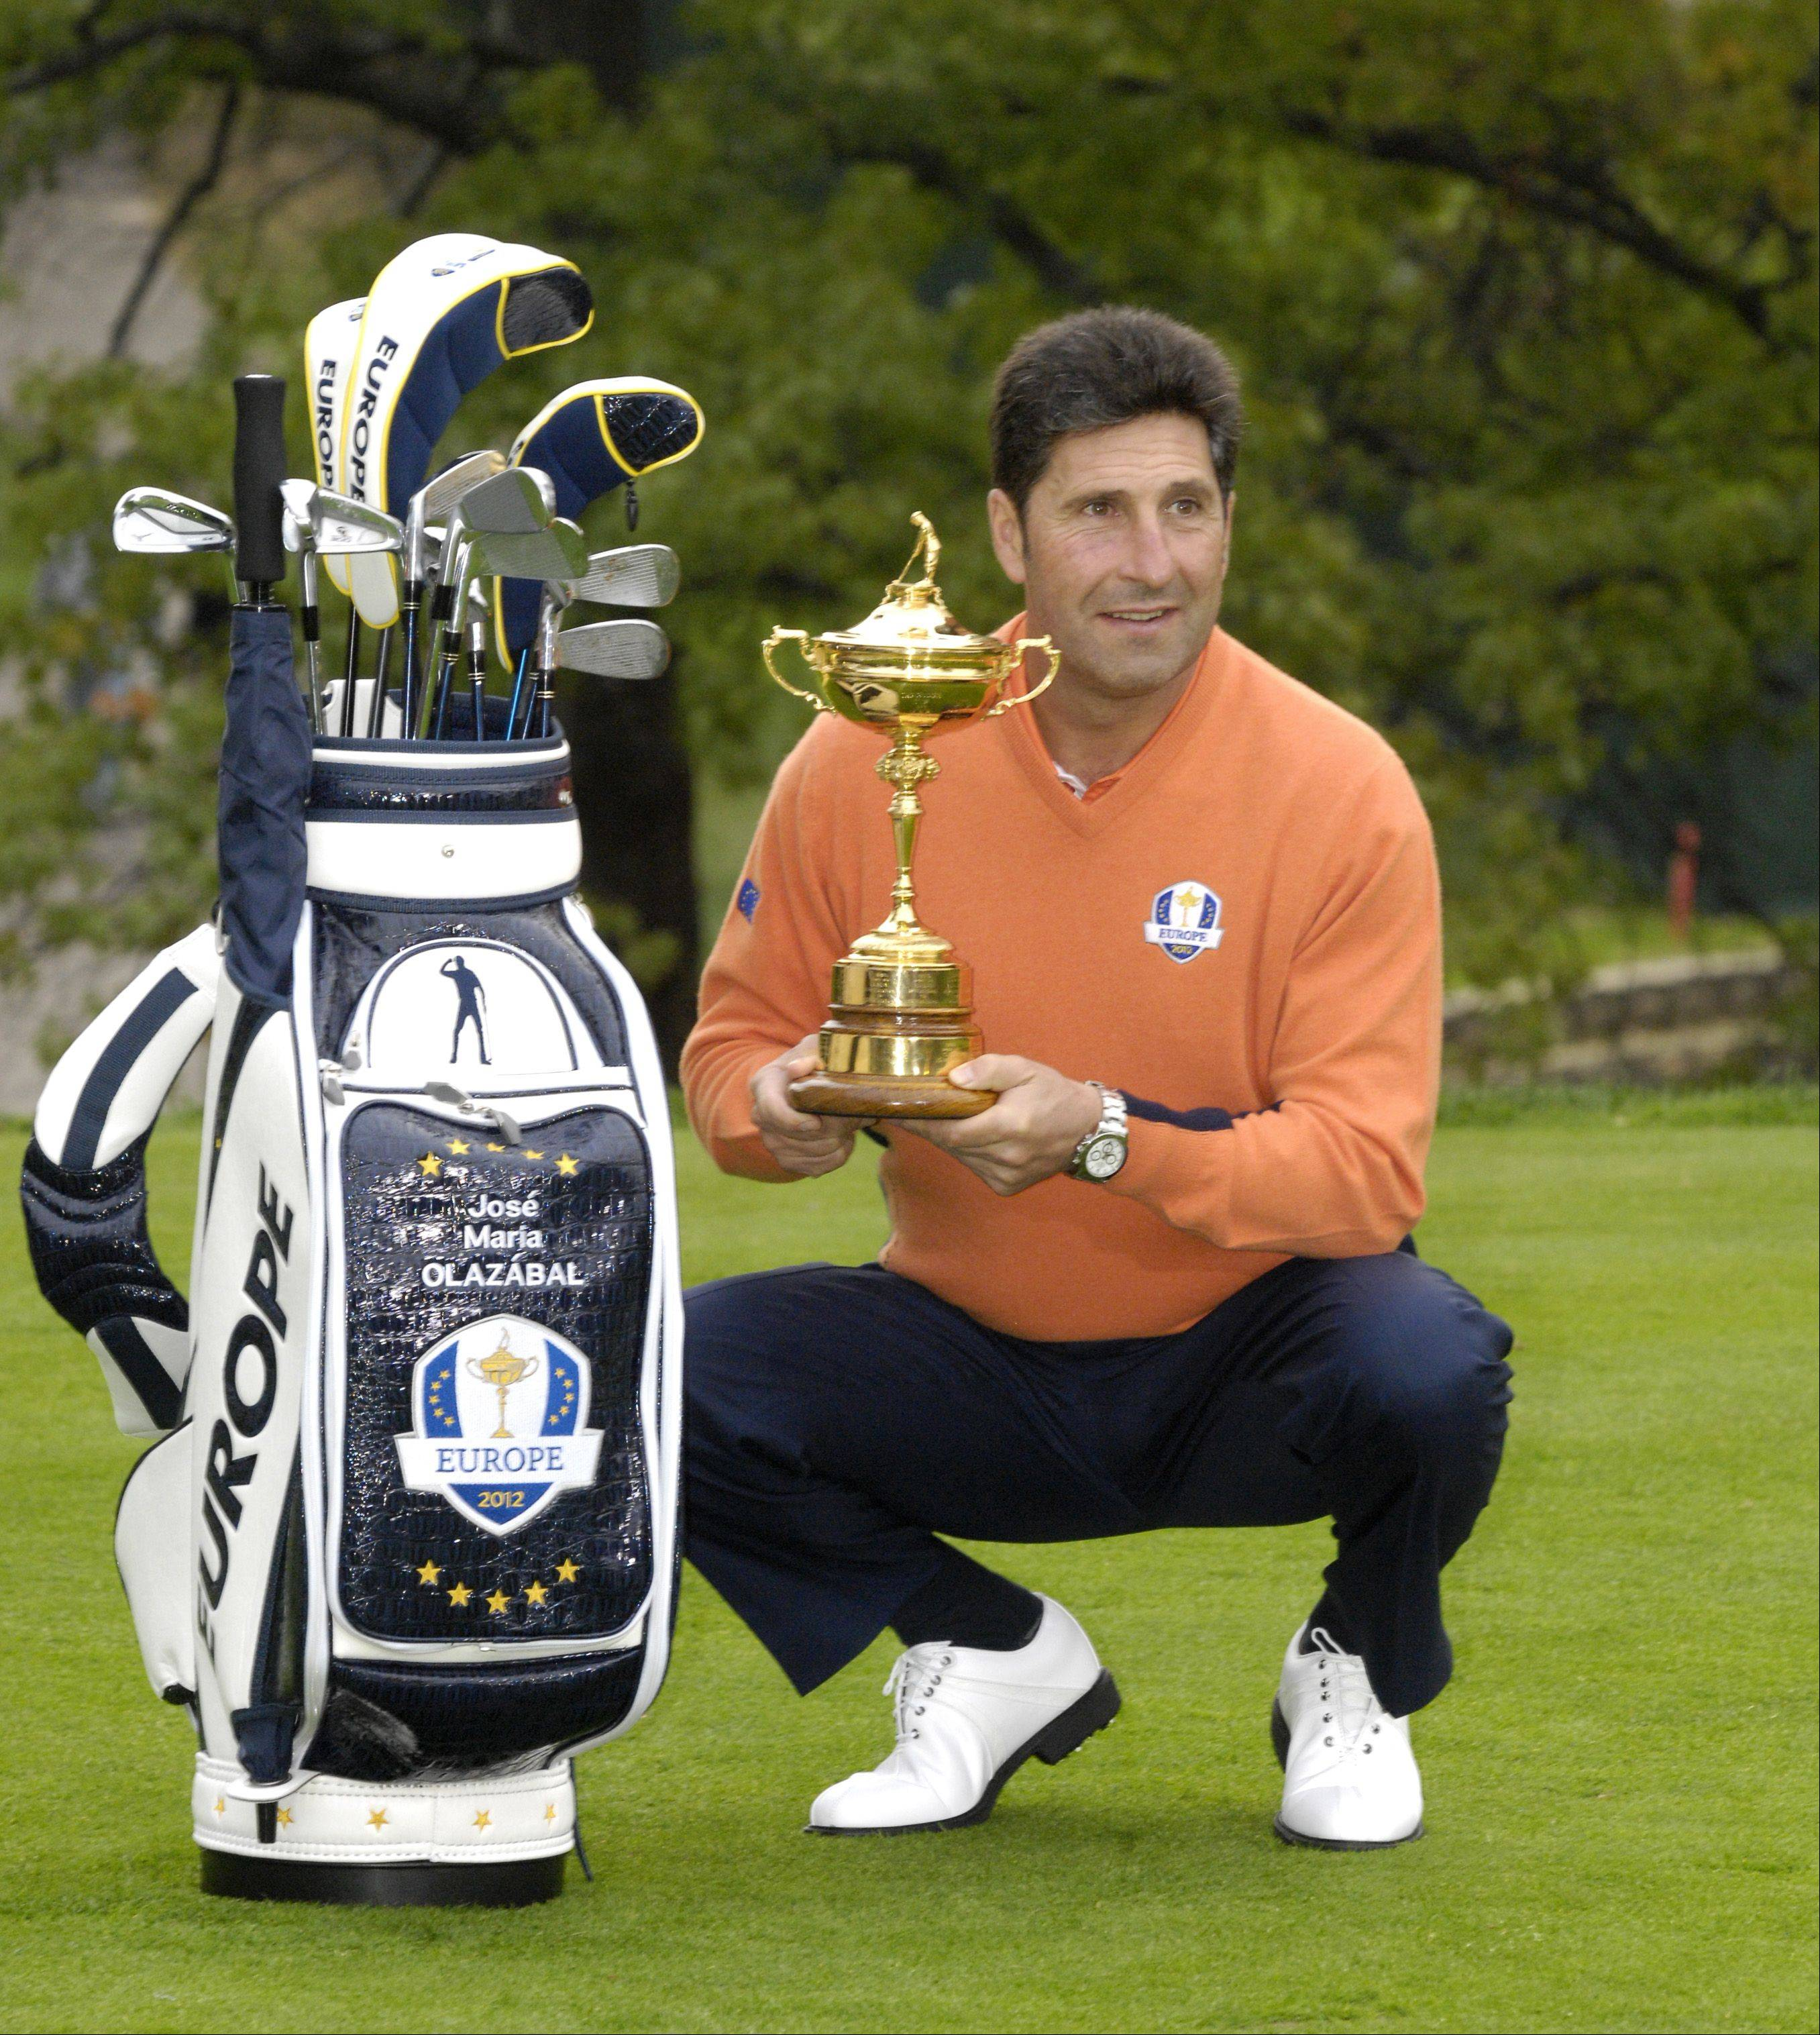 The European Ryder Cup team captain Jose Maria Olazabal pose Tuesday for a portrait with the Ryder Cup.